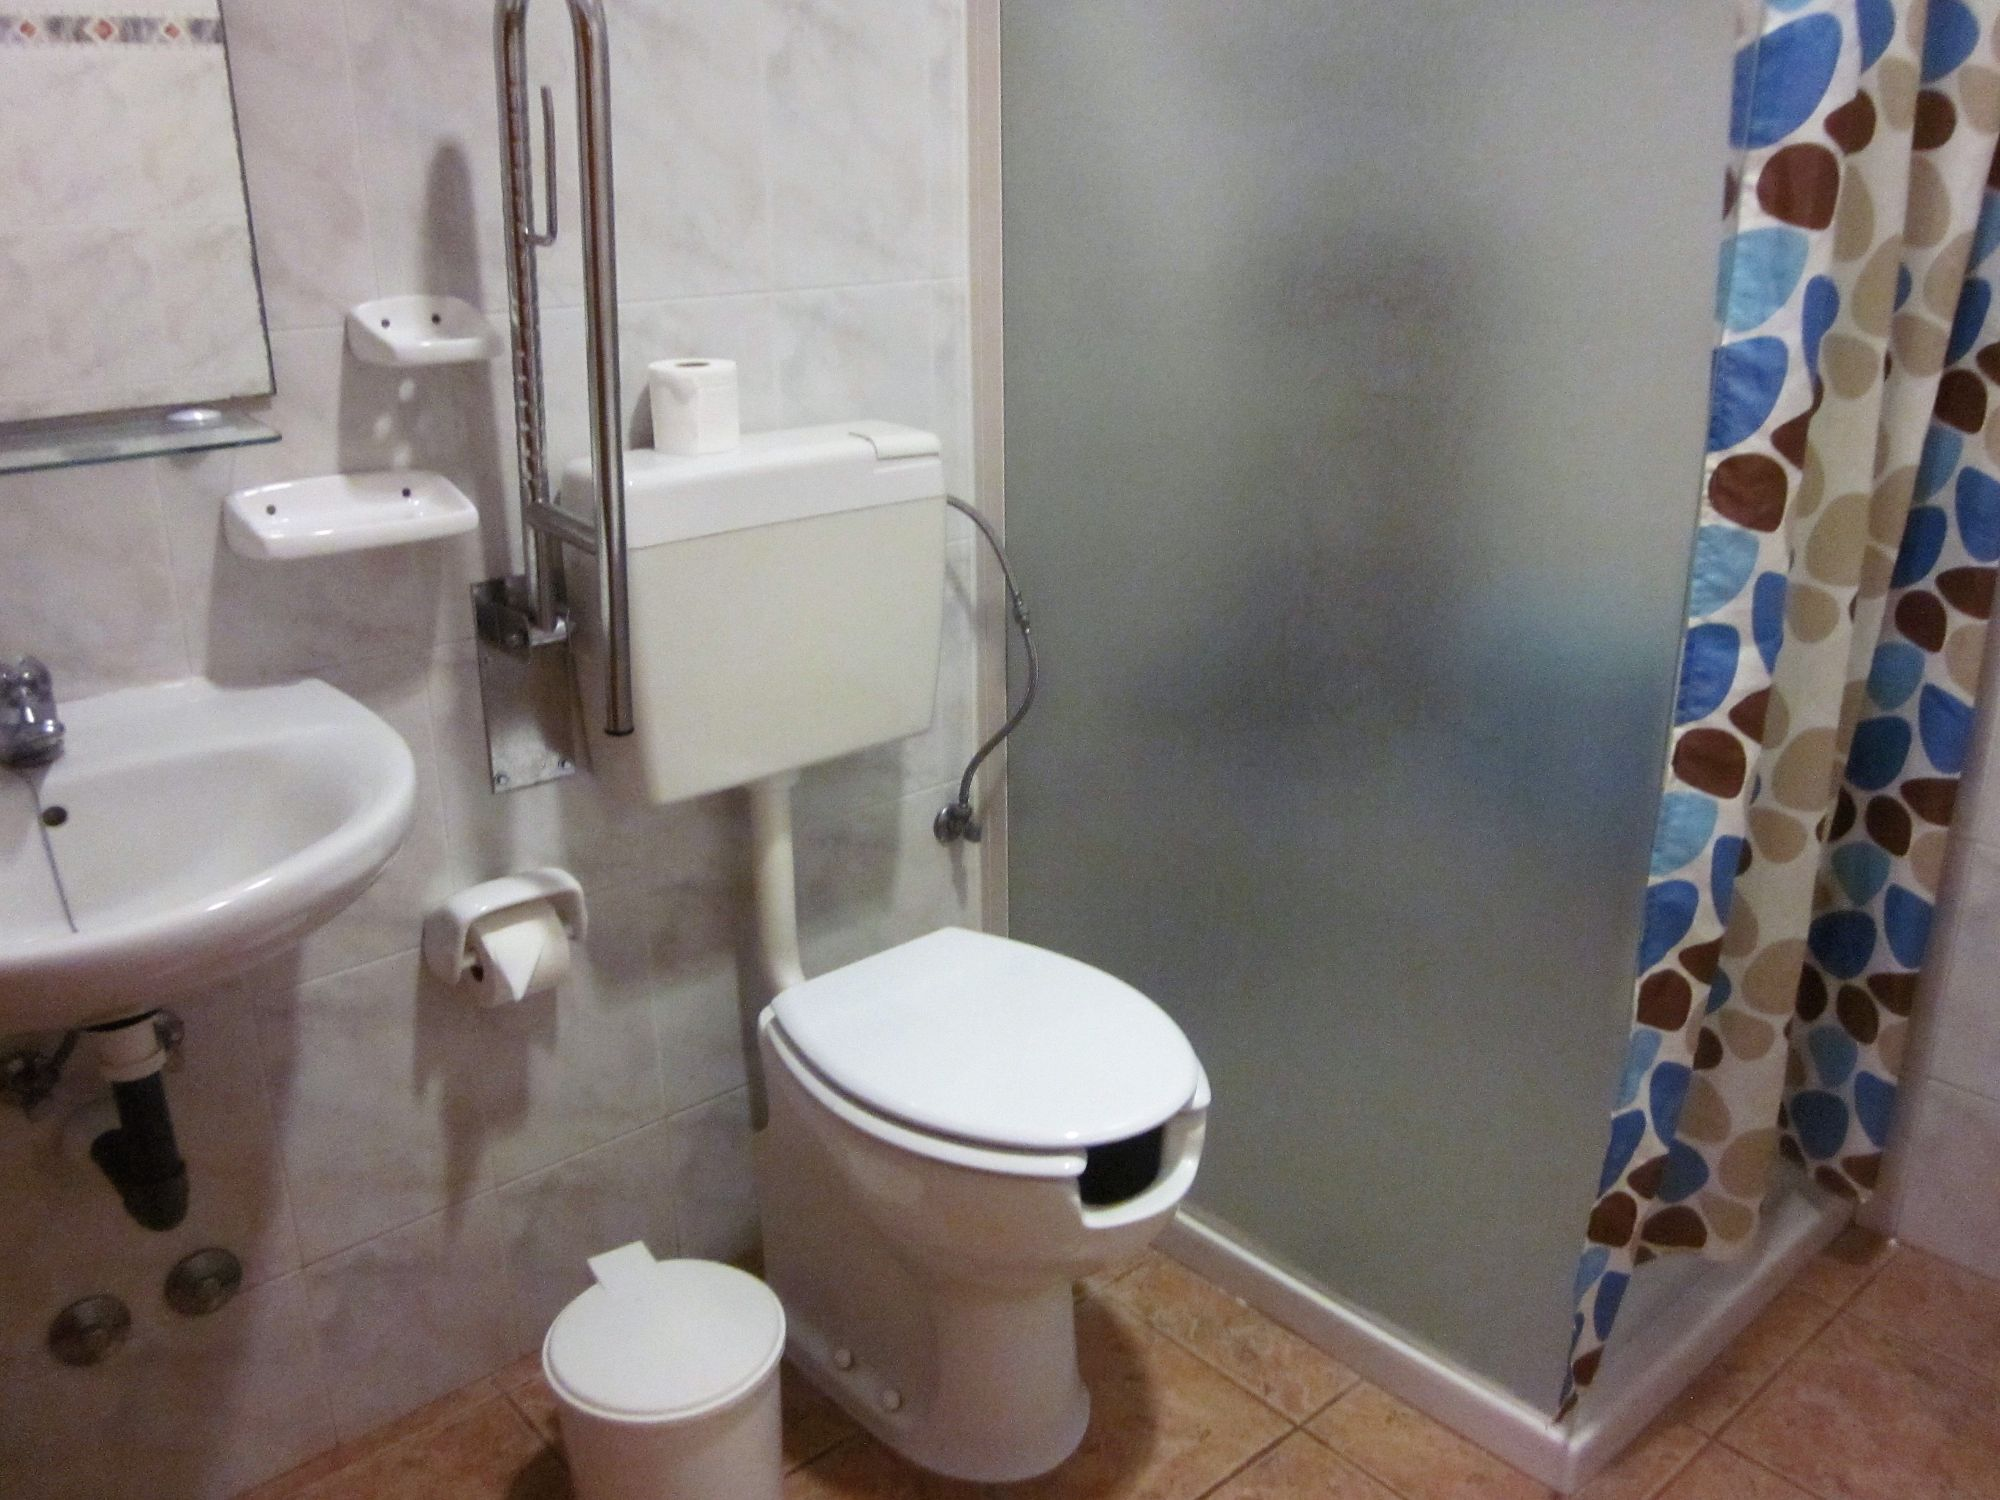 bathroom with facilities for disabled or reduced mobility